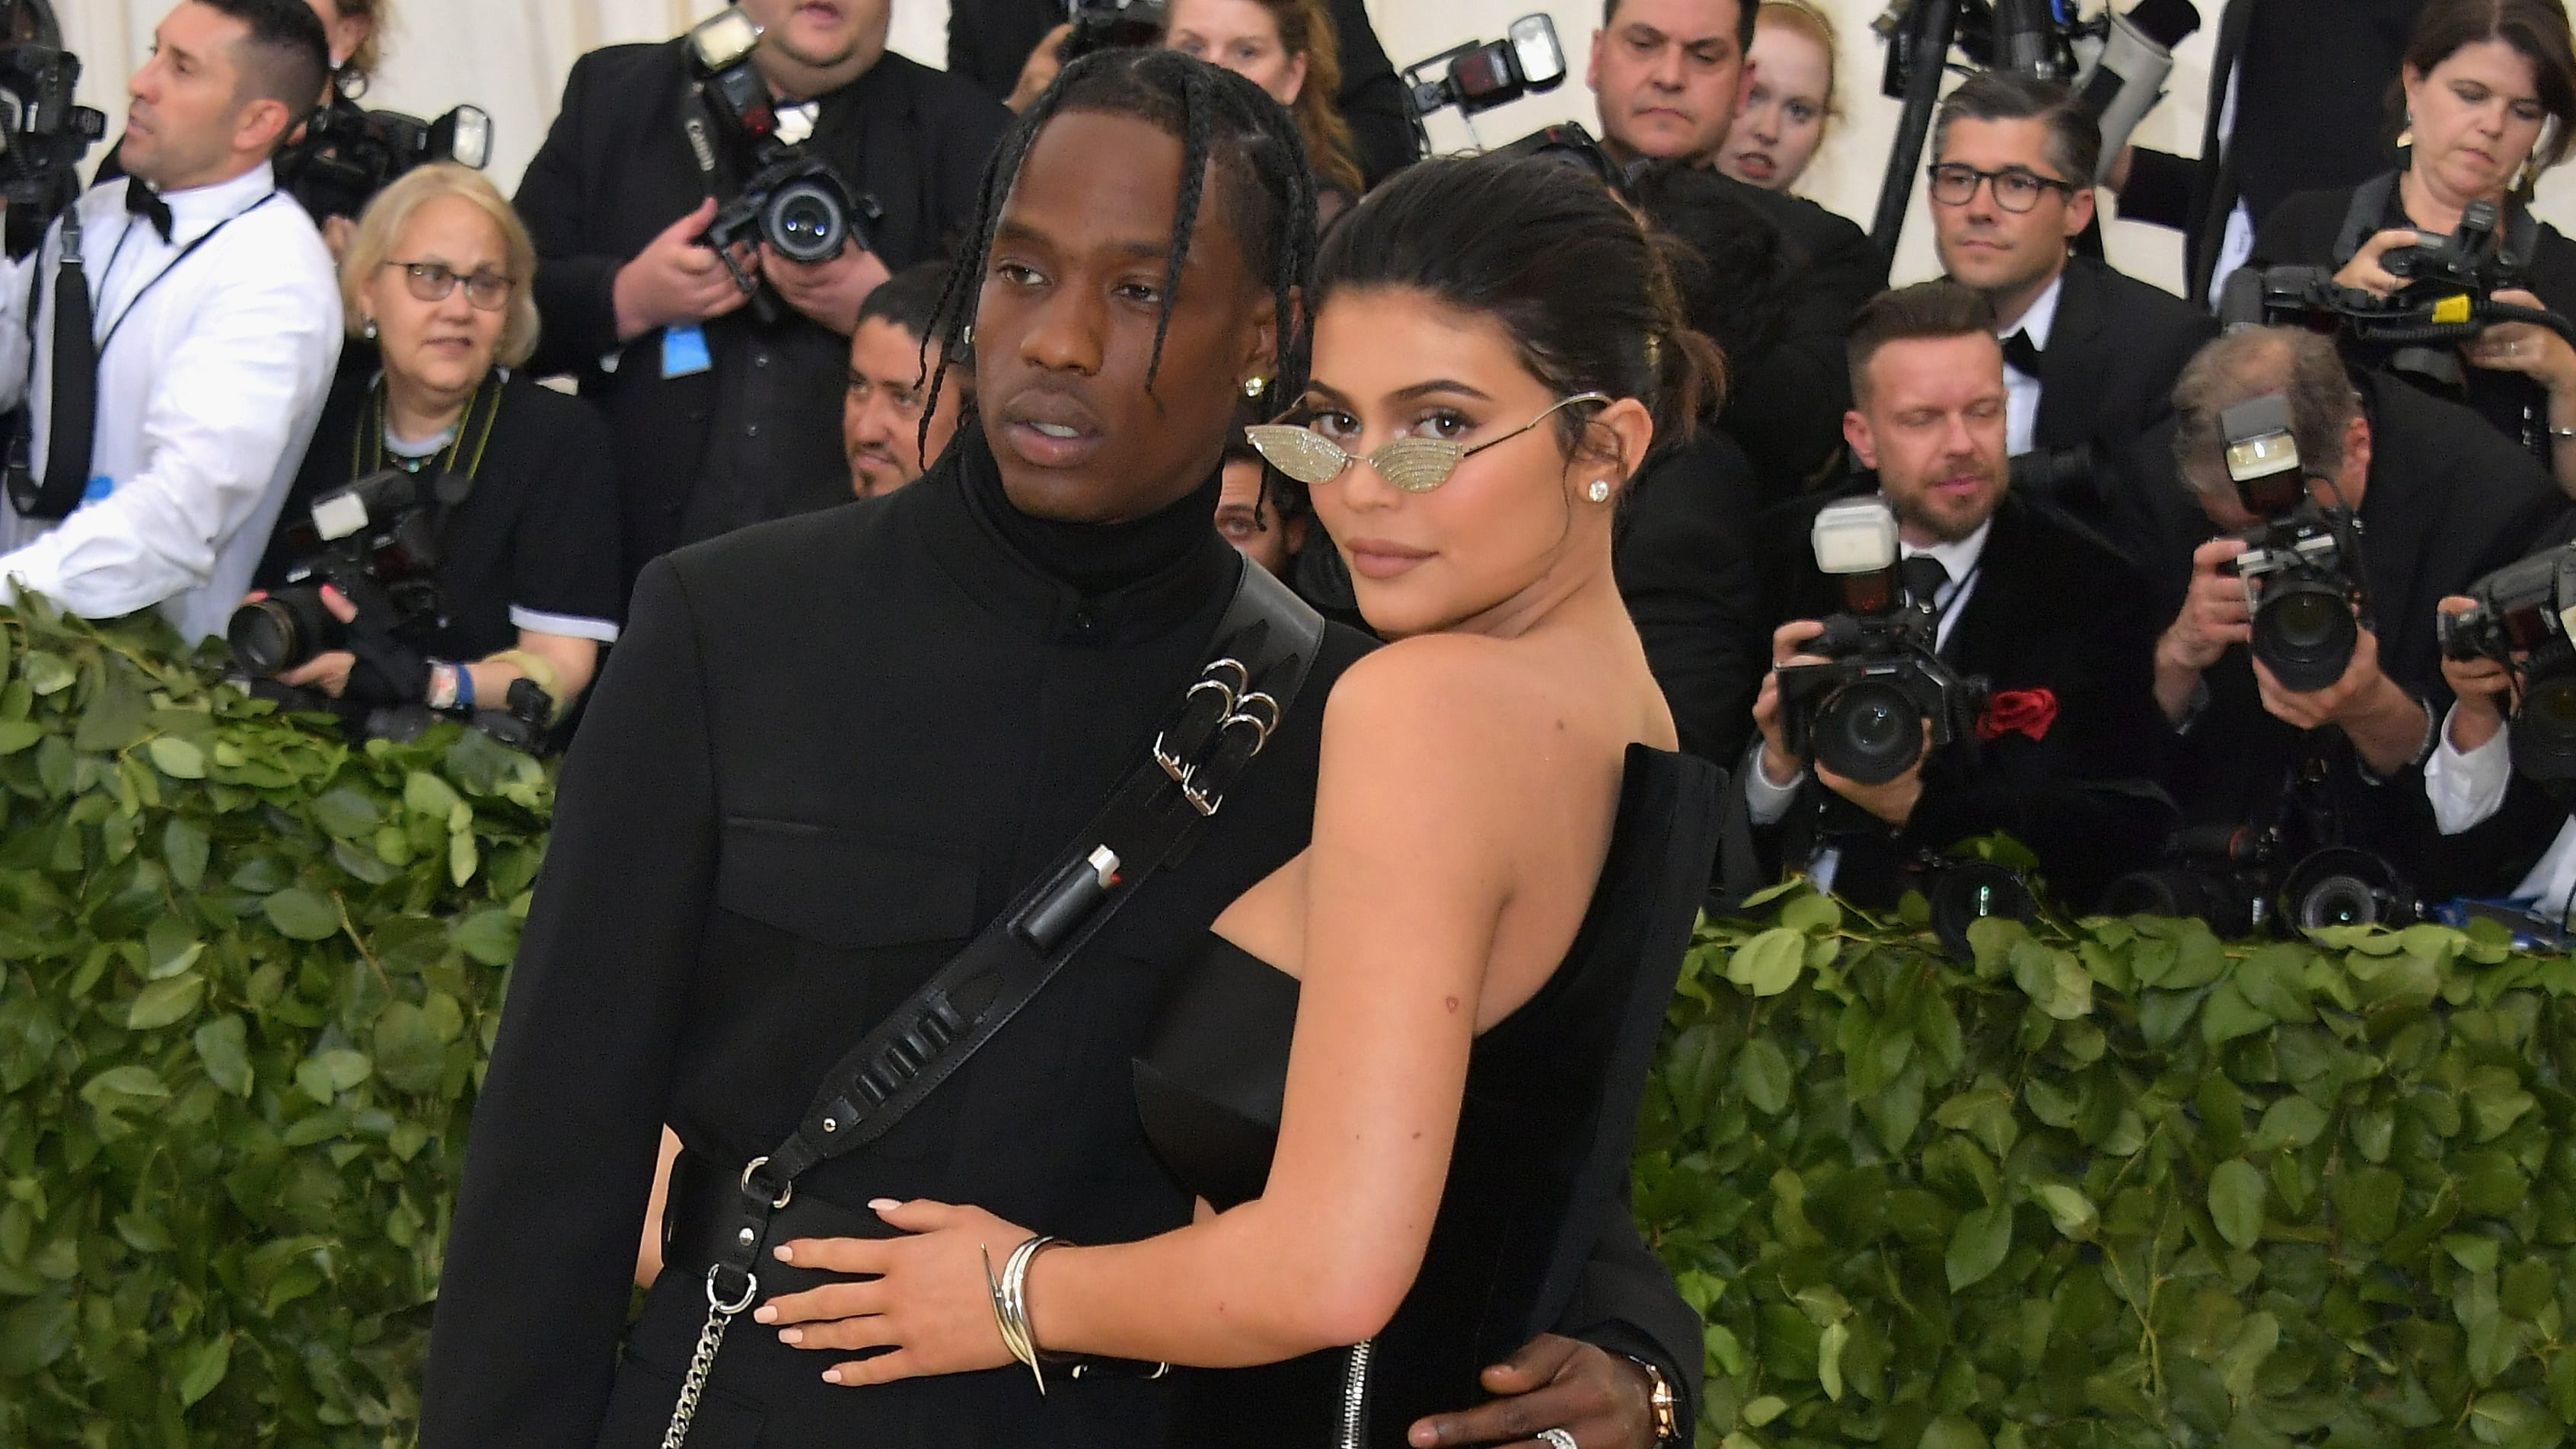 Kylie Jenner and Travis Scott Reportedly 'Doing Well' Following Cheating Accusations